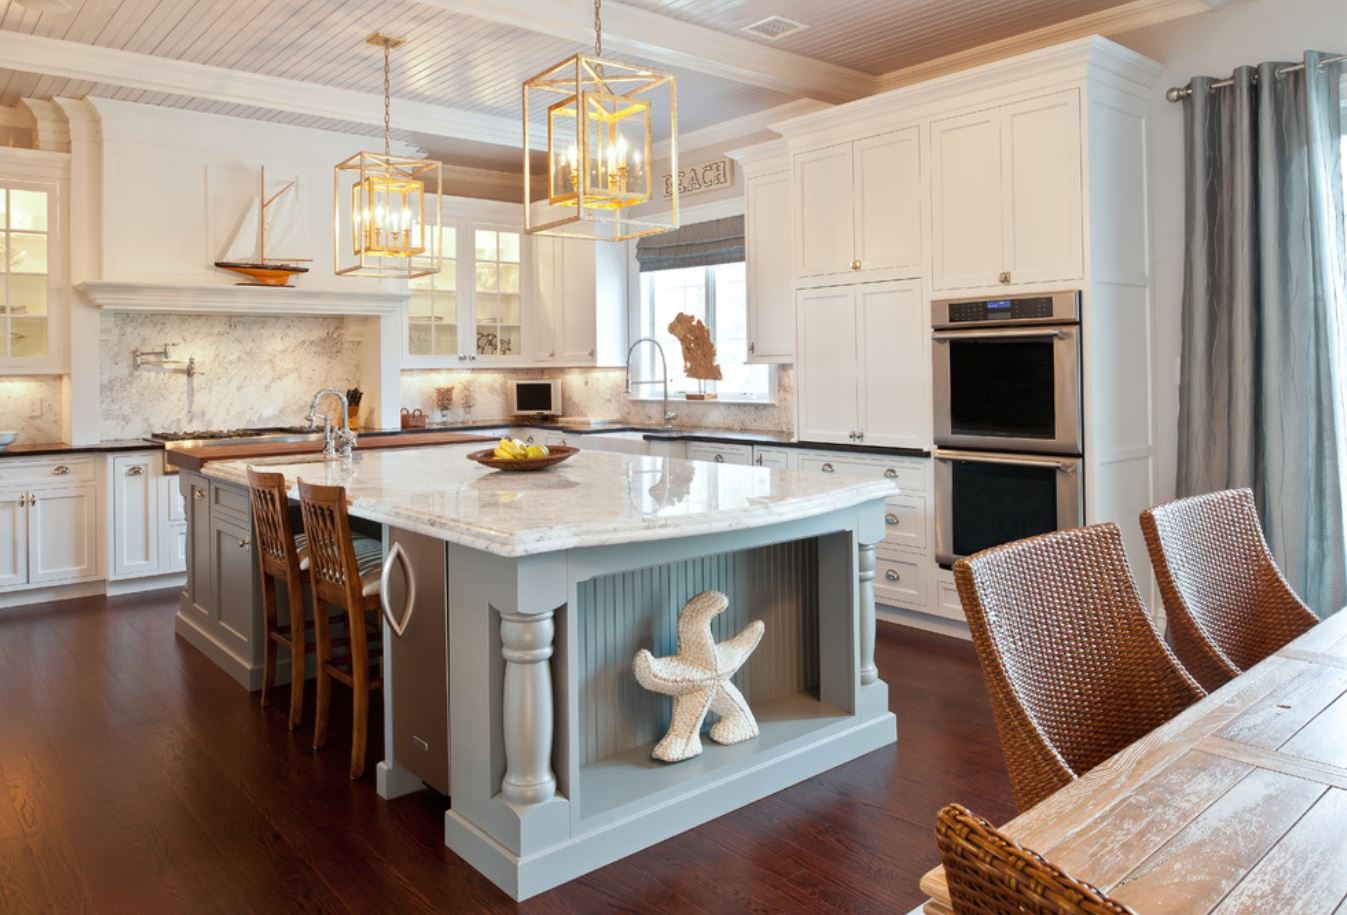 pics of wood kitchen cabinets in beach home